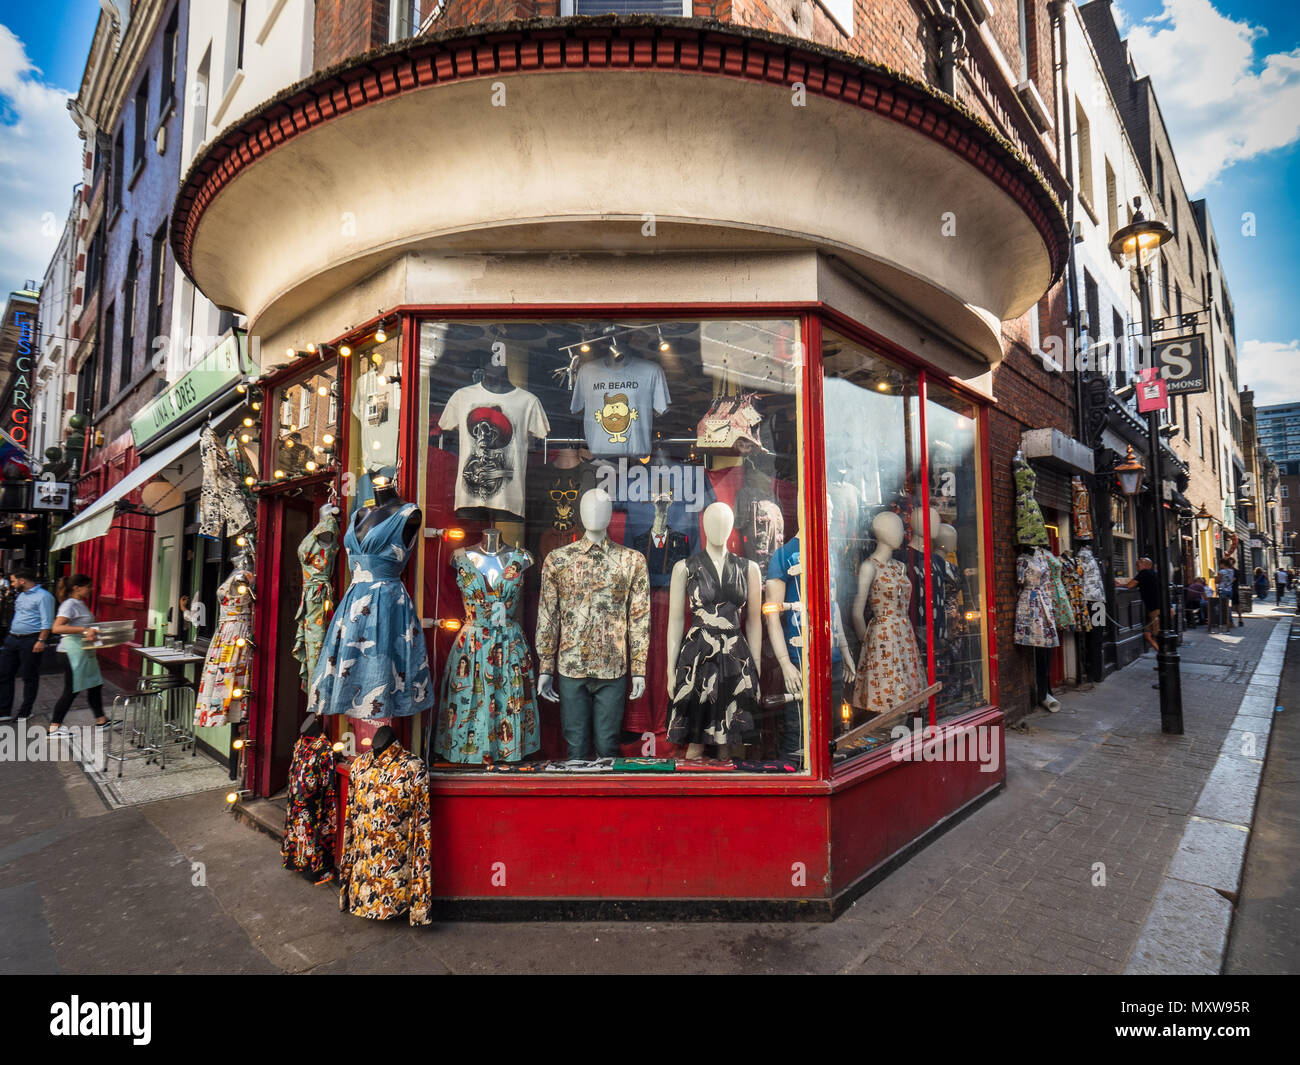 Vintage Soho London - Classical Soho - a vintage Clothes shop in London's  Fashionable and stylish Soho district